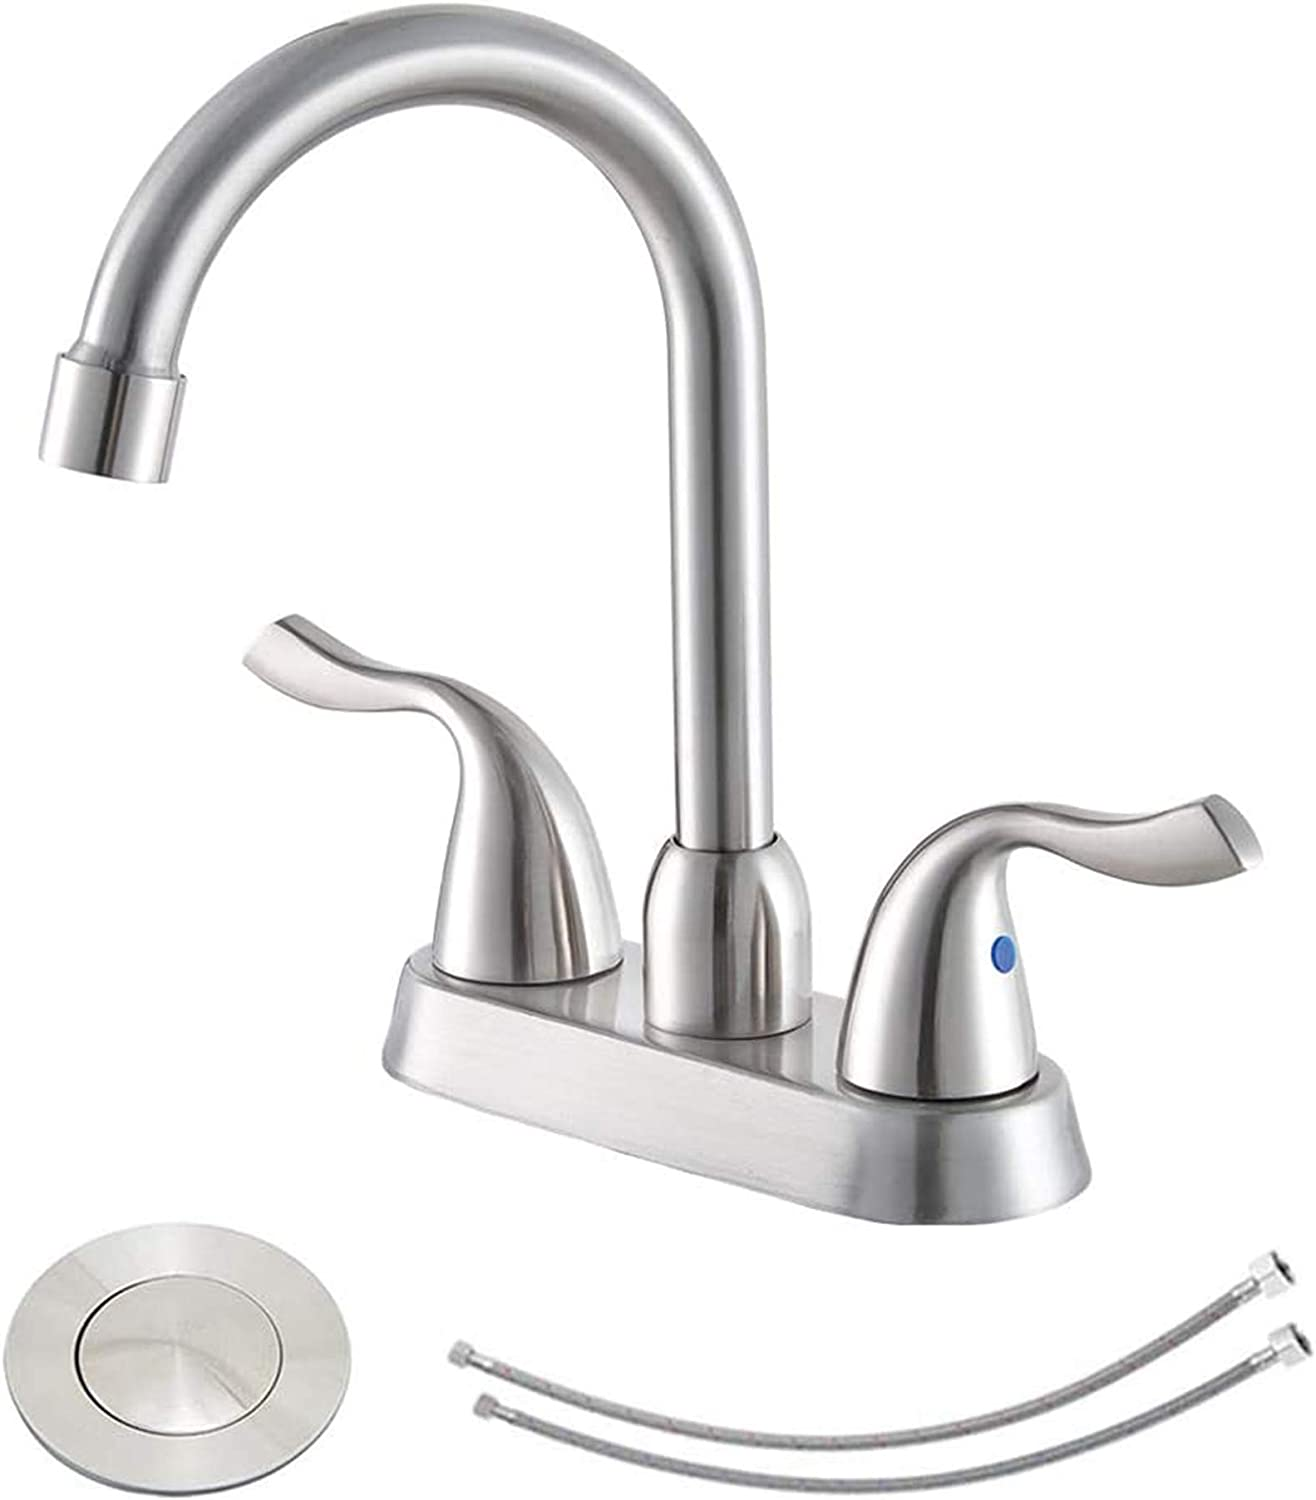 Hotis Commercial 2 Handle Brushed Nickel Bathroom Sink Faucet Swivel Spout Lavatory Bathroom Vanity Faucets With Pop Up Drain And Water Supply Lines Amazon Com